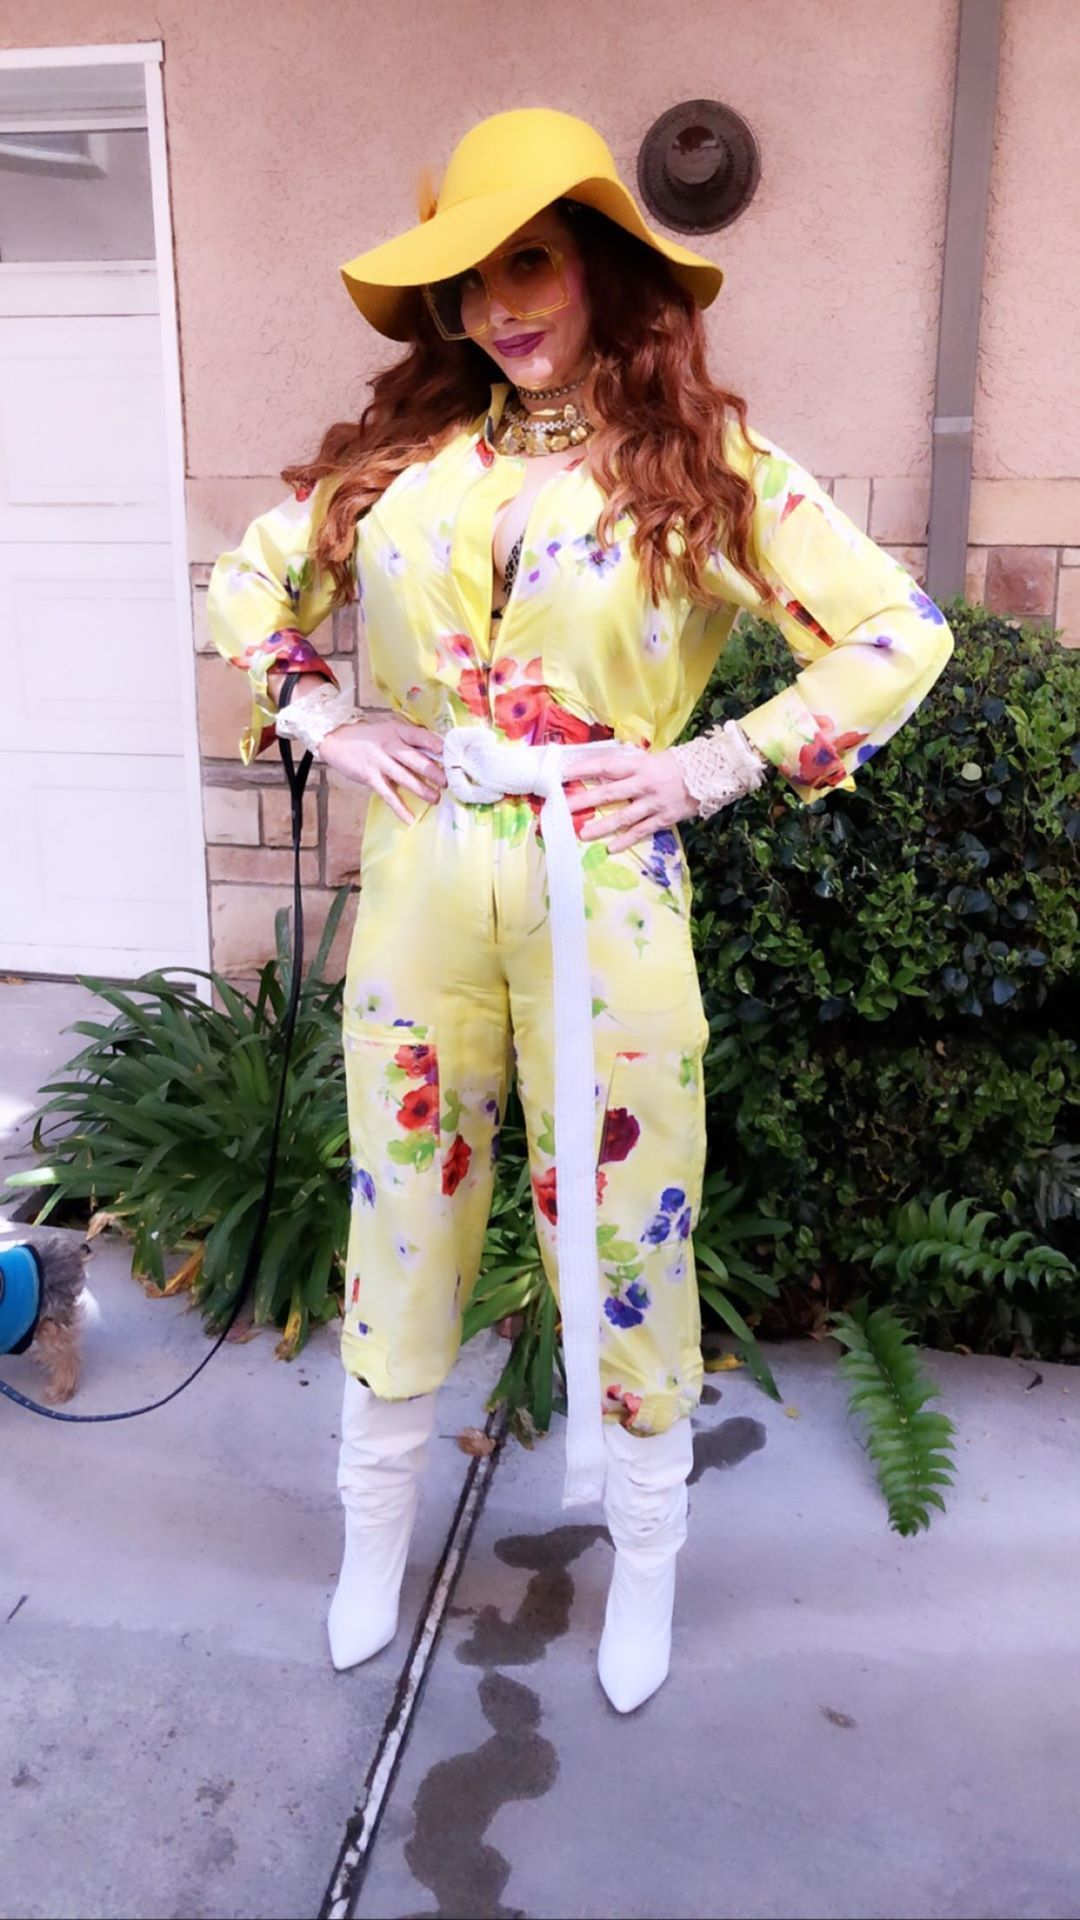 Phoebe Price Isn't Taking Any Chances When It Comes To The Coronavirus 0059